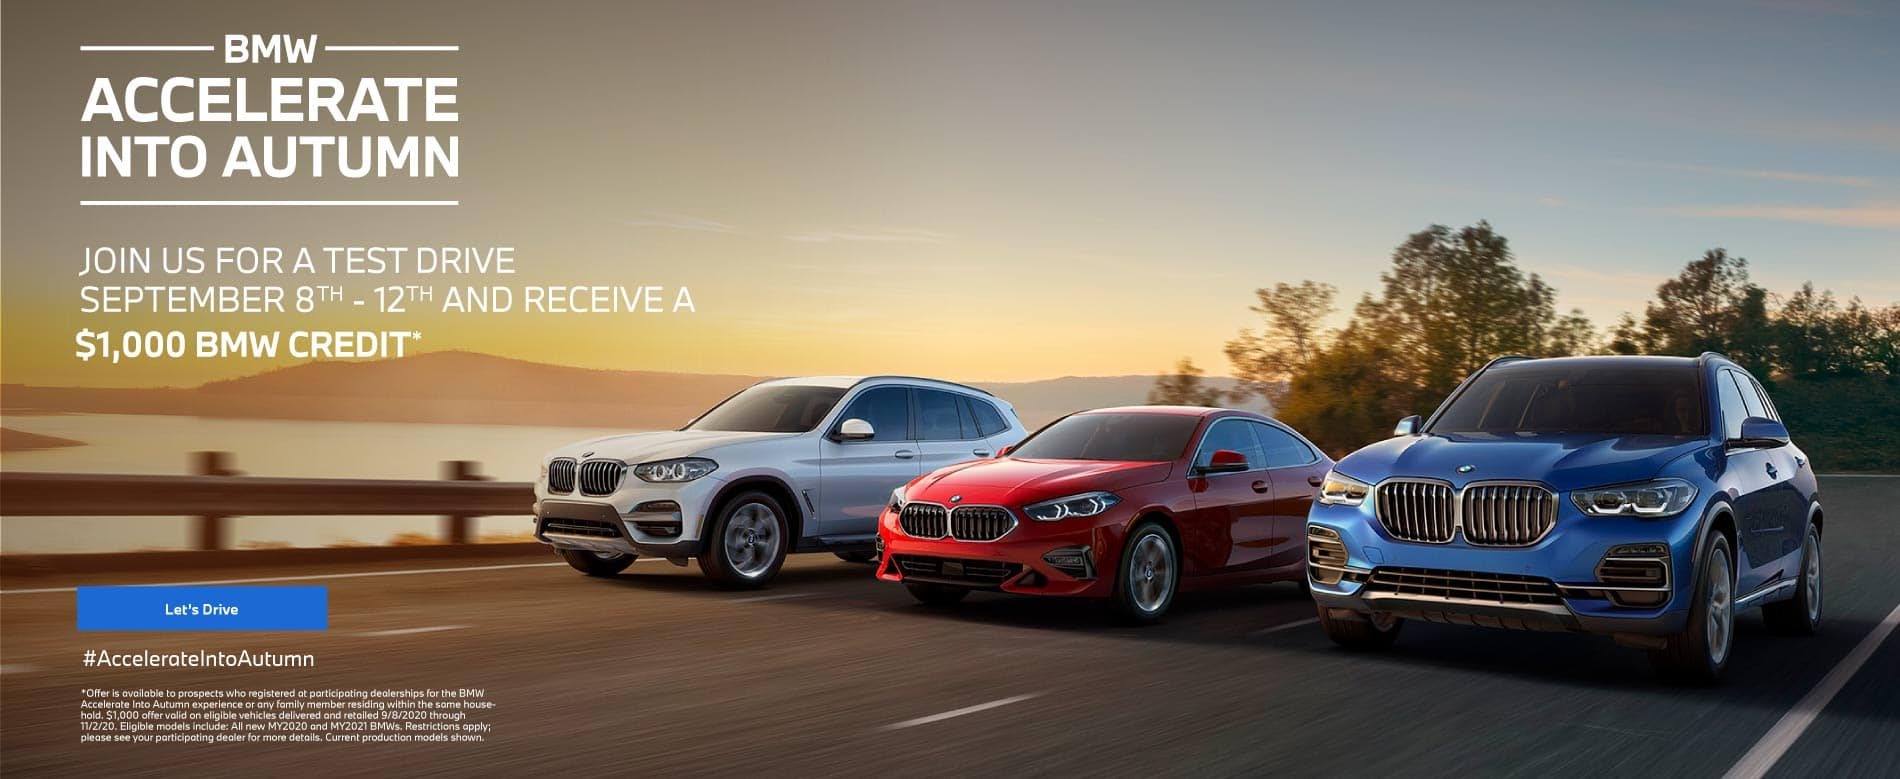 Accelerate Into Autumn - JOIN US FOR A TEST DRIVE SEPTEMBER 8TH - 12TH AND RECEIVE A $1,000 BMW CREDIT. LET'S DRIVE.